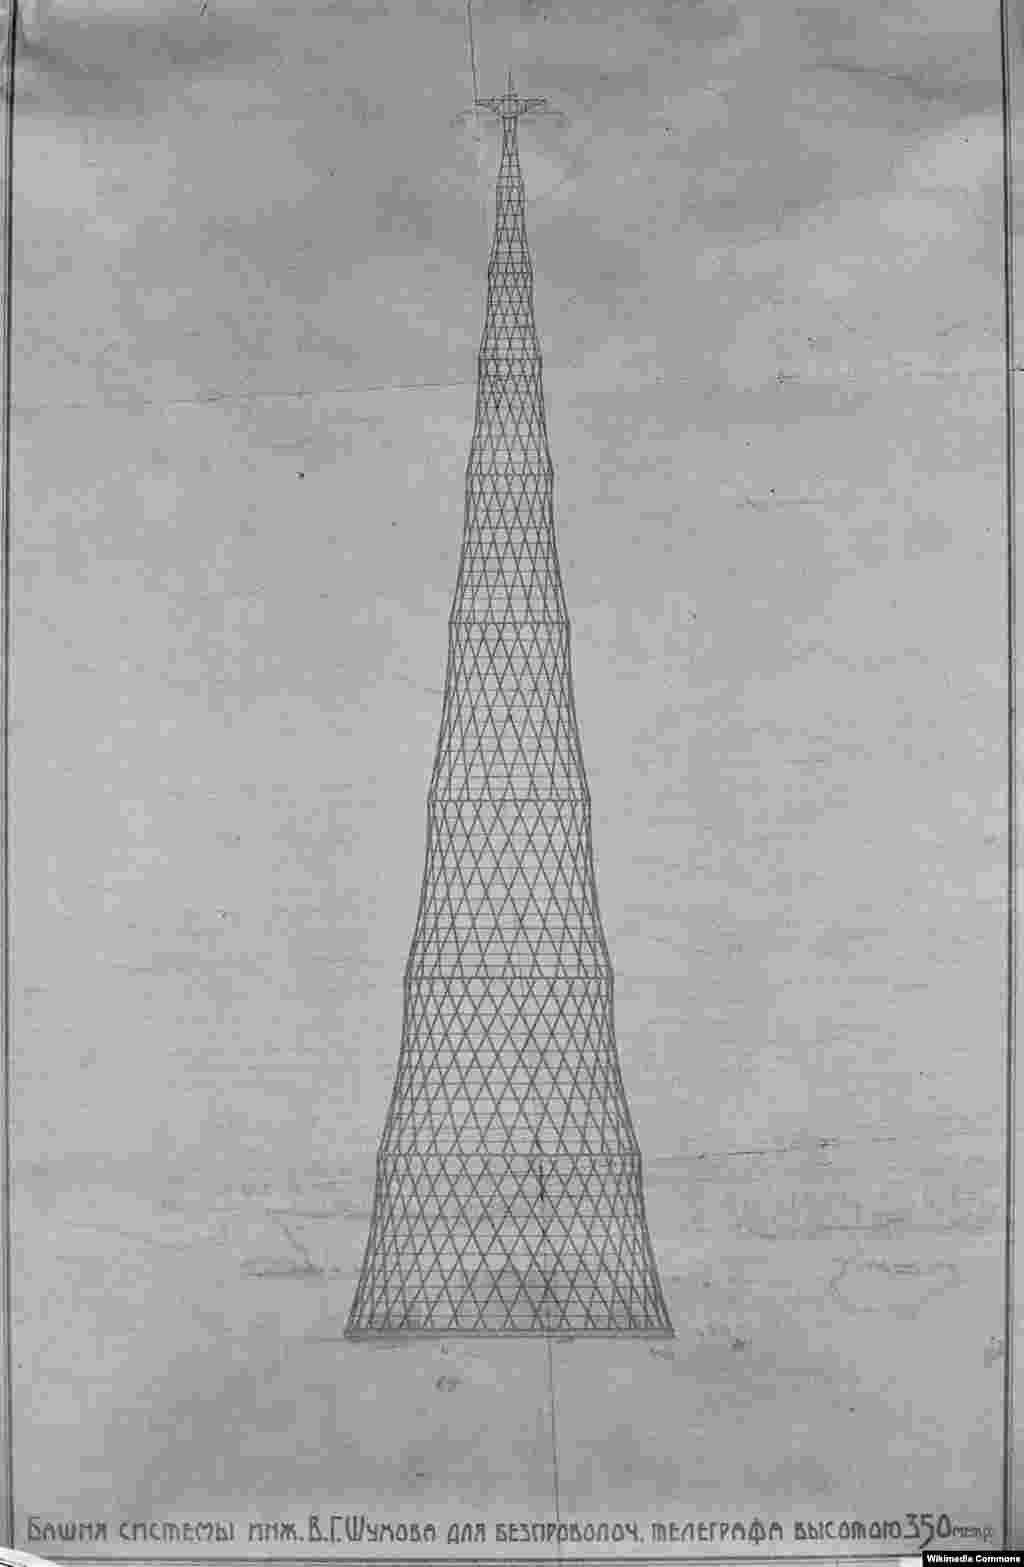 Engineer Vladimir Shukhov, who designed the tower in 1919, was confident that his innovative steelwork could build a 360-meter structure, taller than the Eiffel Tower -- a design that was abandoned due to material shortages.